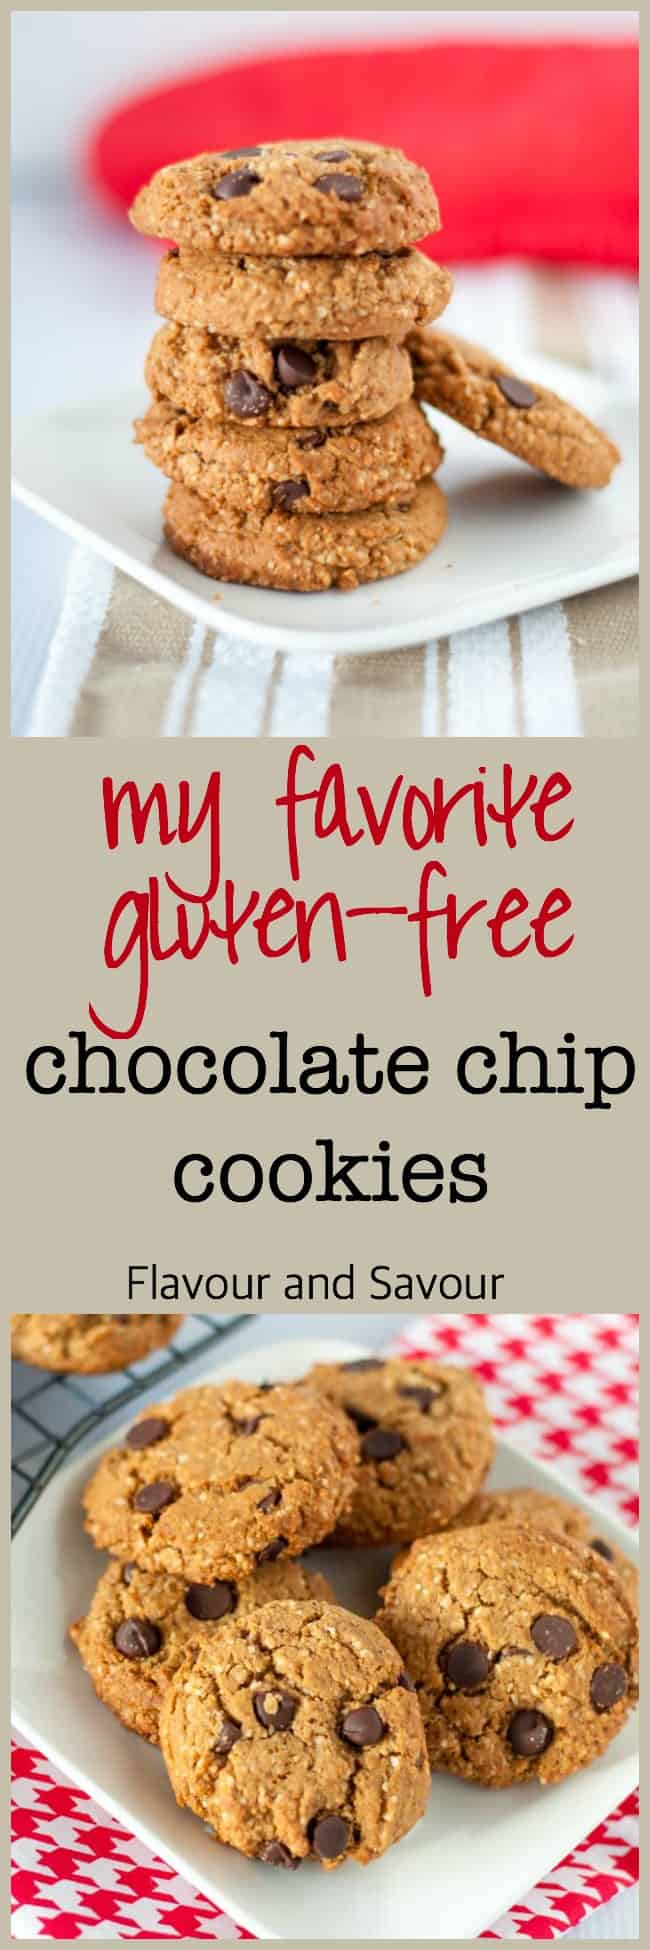 My Favourite Gluten-Free Chocolate Chip Cookies. Made with almond flour and coconut flour, NOT gluten-free flour blend. Tasty and healthy!